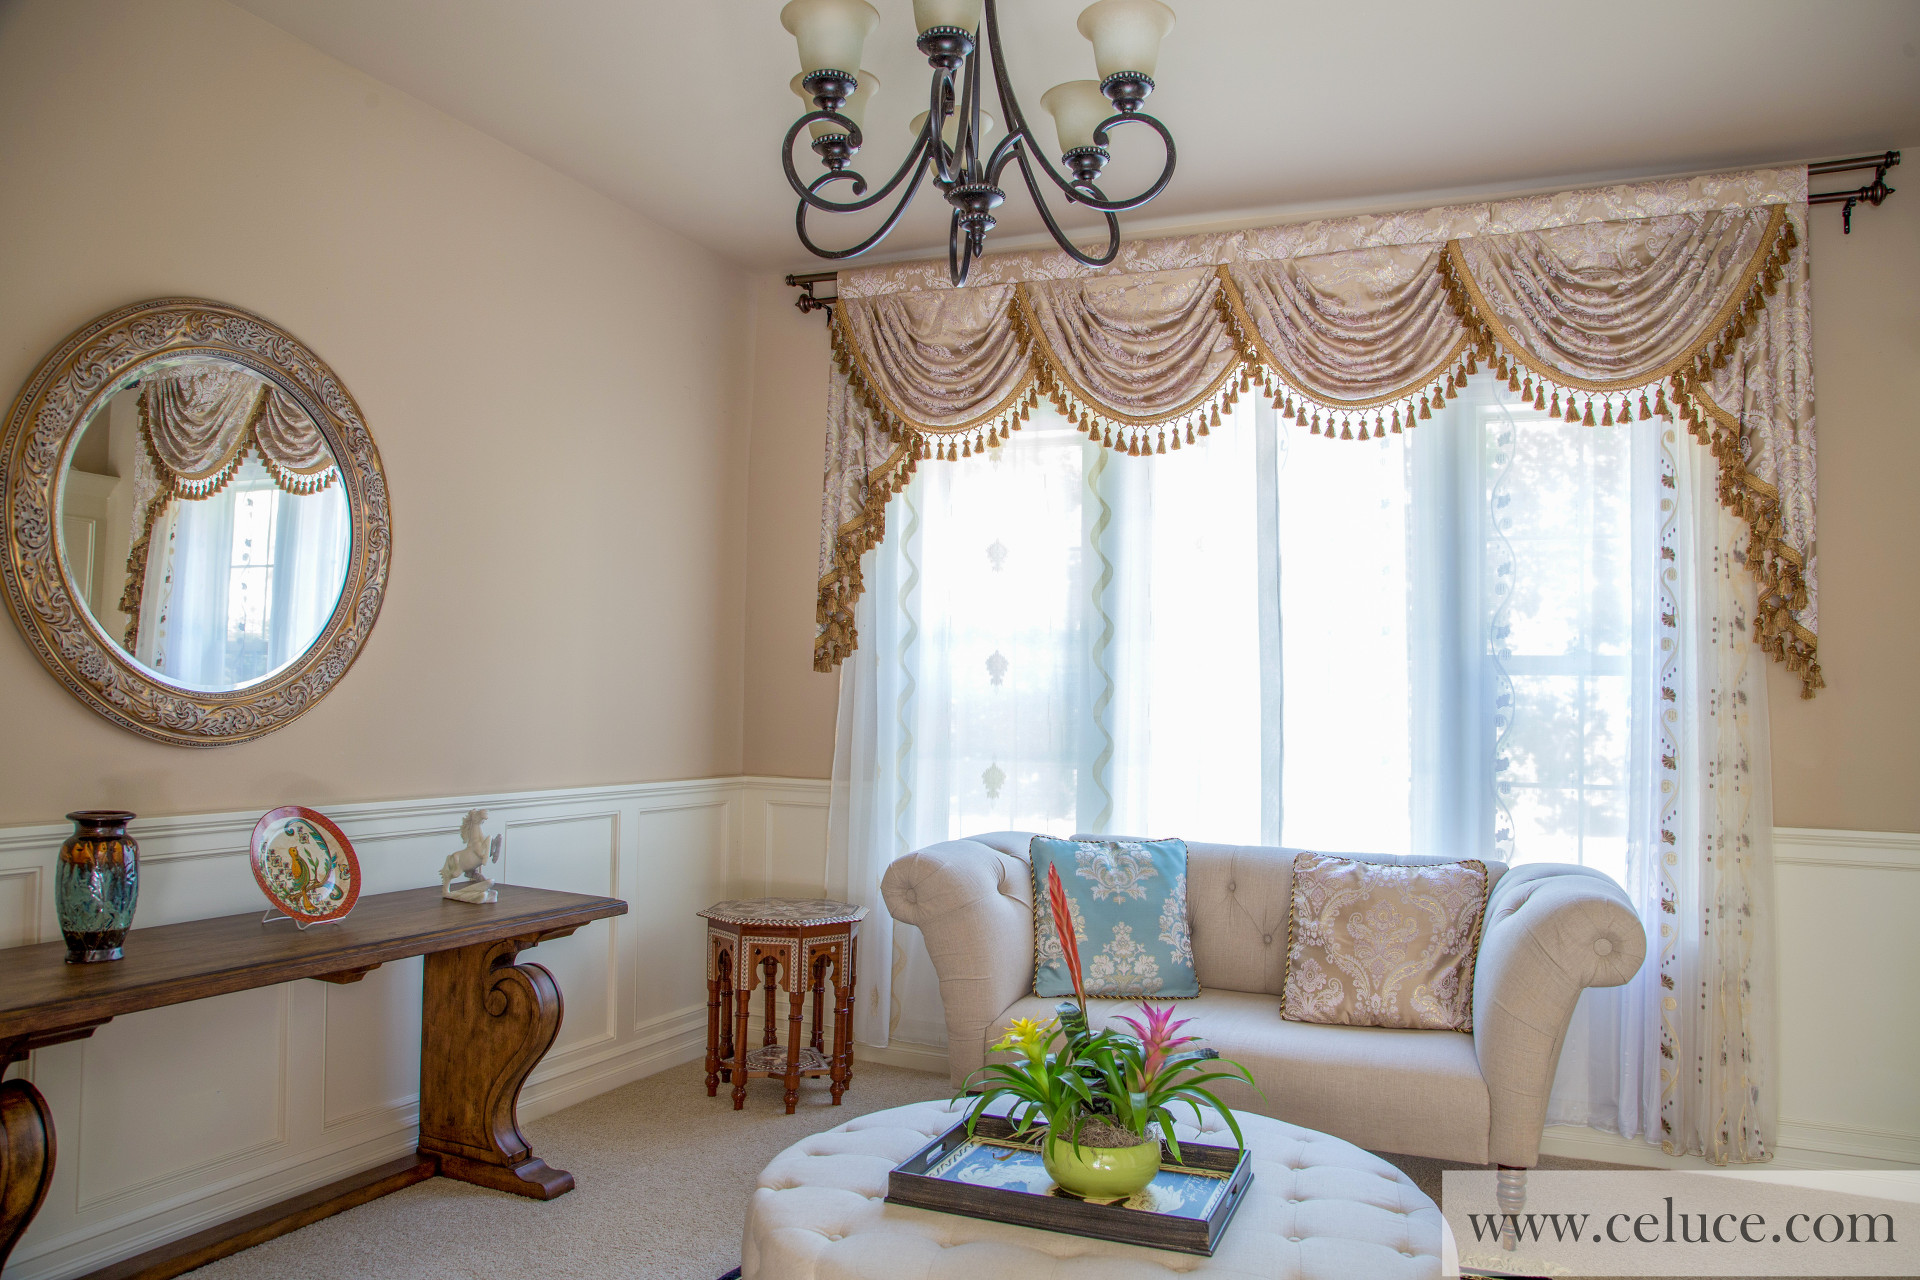 Classic Overlapping Swag Valances Curtain Drapes Gold Ivy